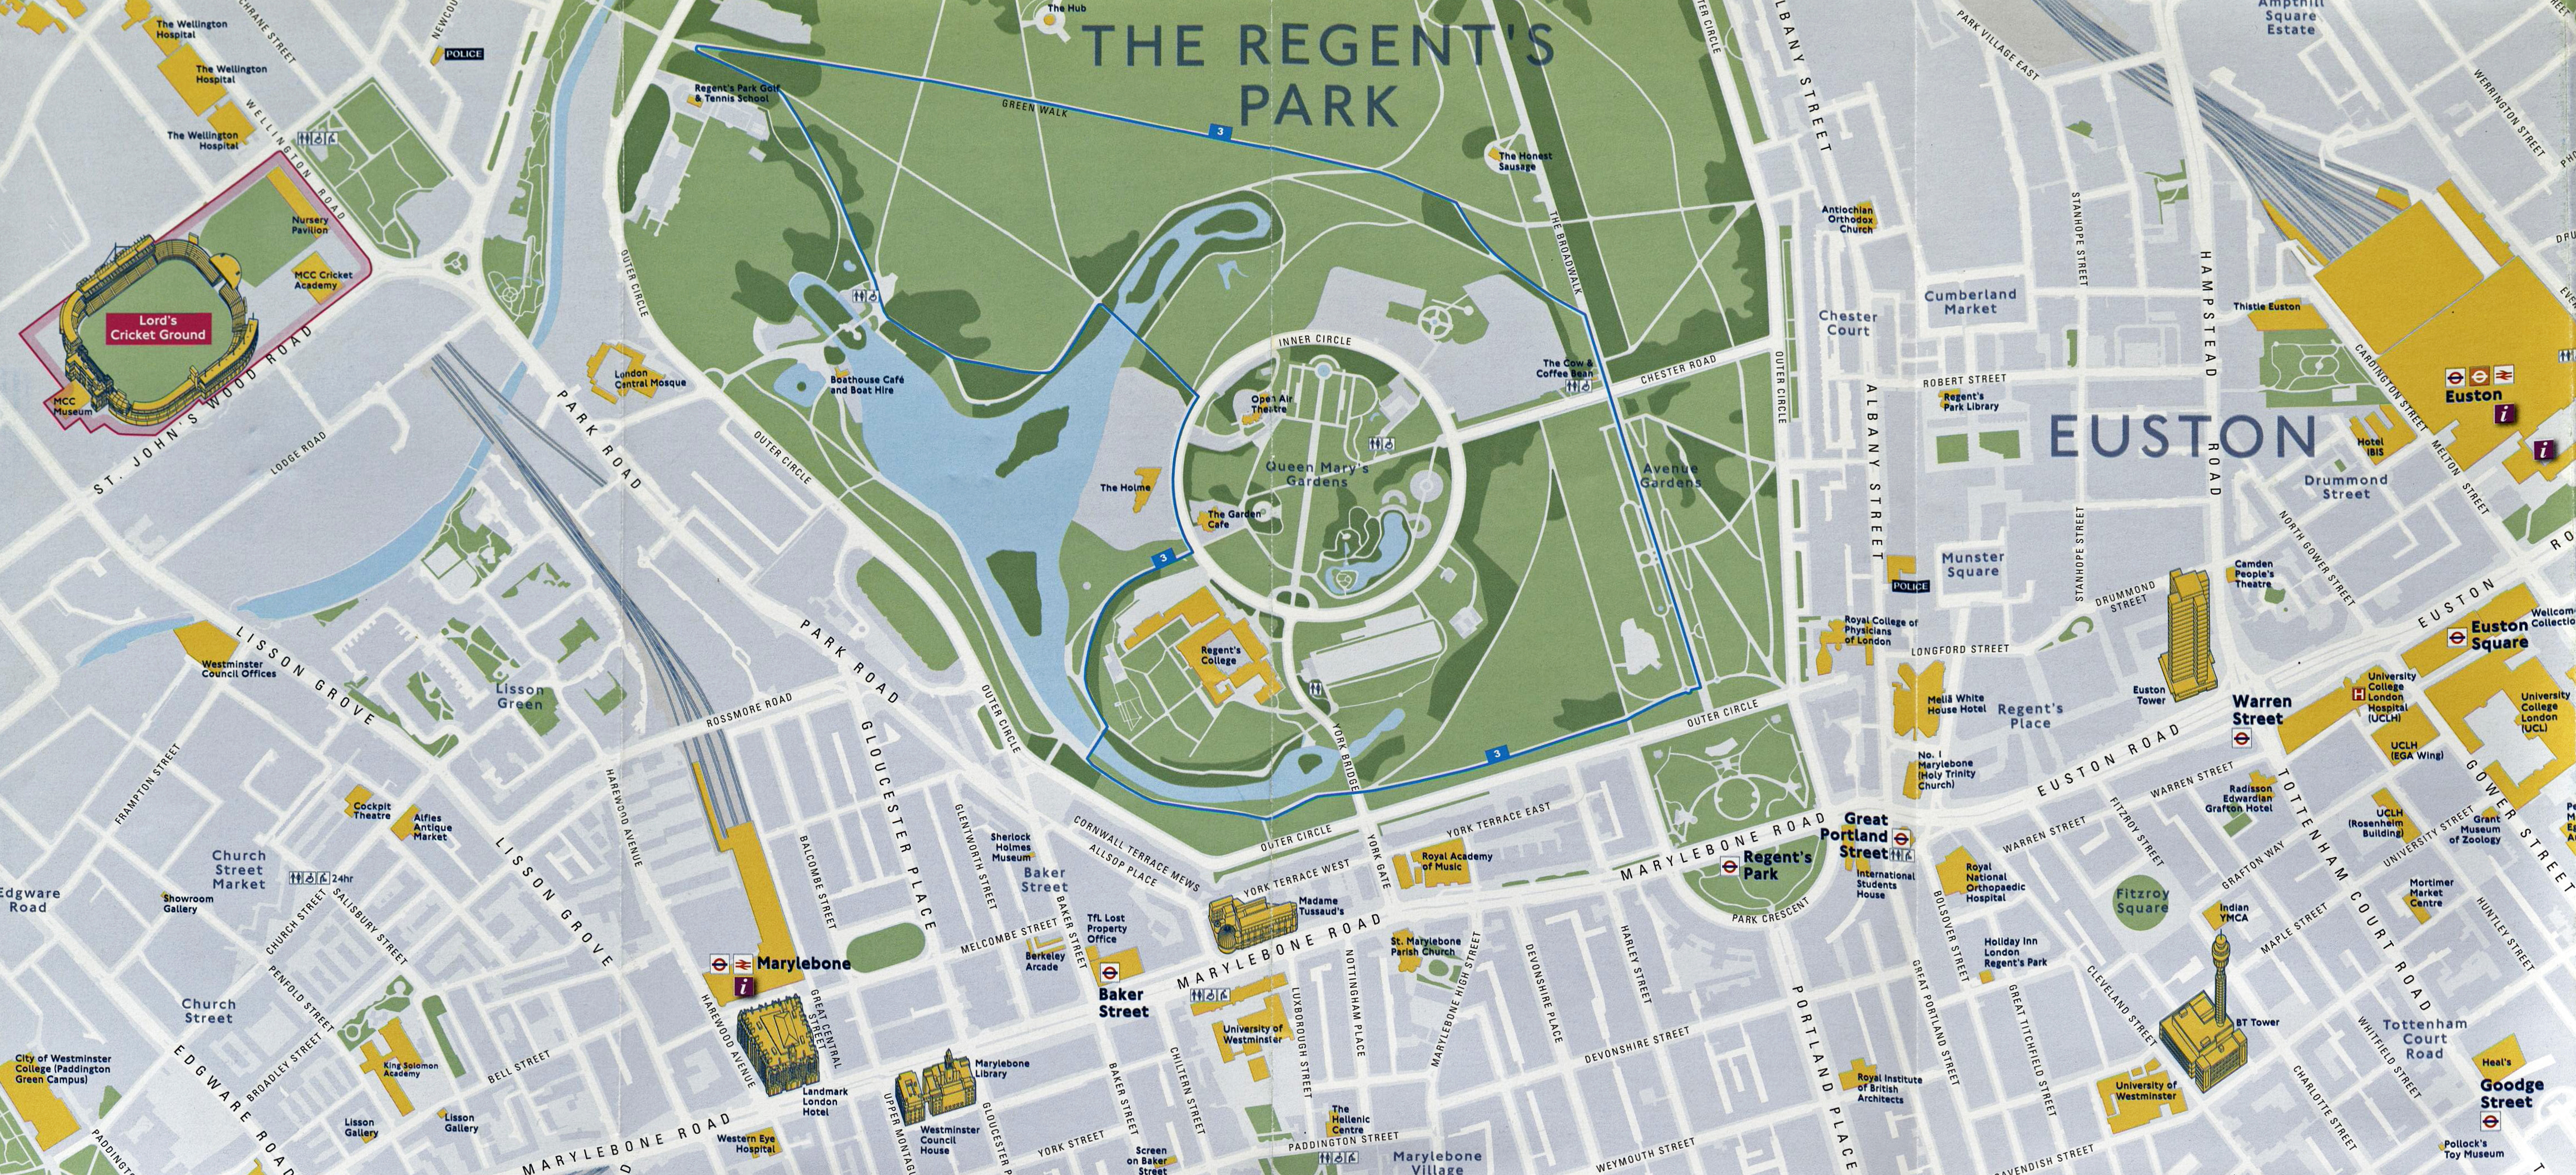 Detail from TfL's 'Summer 2012 Map', showing the Green Discovery Stroll through Regent's Park